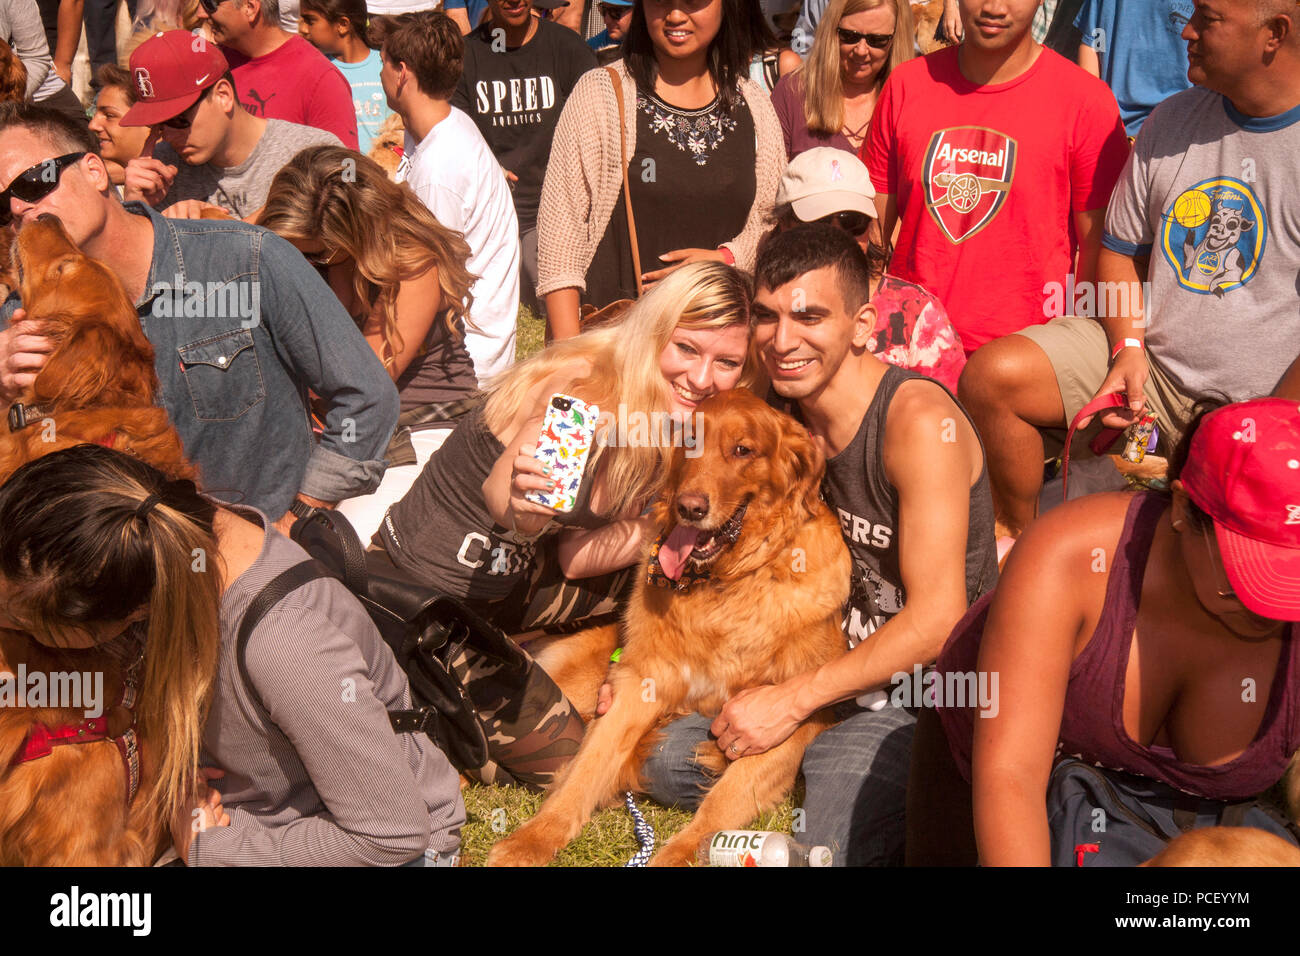 Multiracial Golden Retriever dog owners snap a selfie as they pose with their pets for a group photo in a Huntington Beach, CA, park during a dog festival.  (Photo by Spencer Grant) - Stock Image